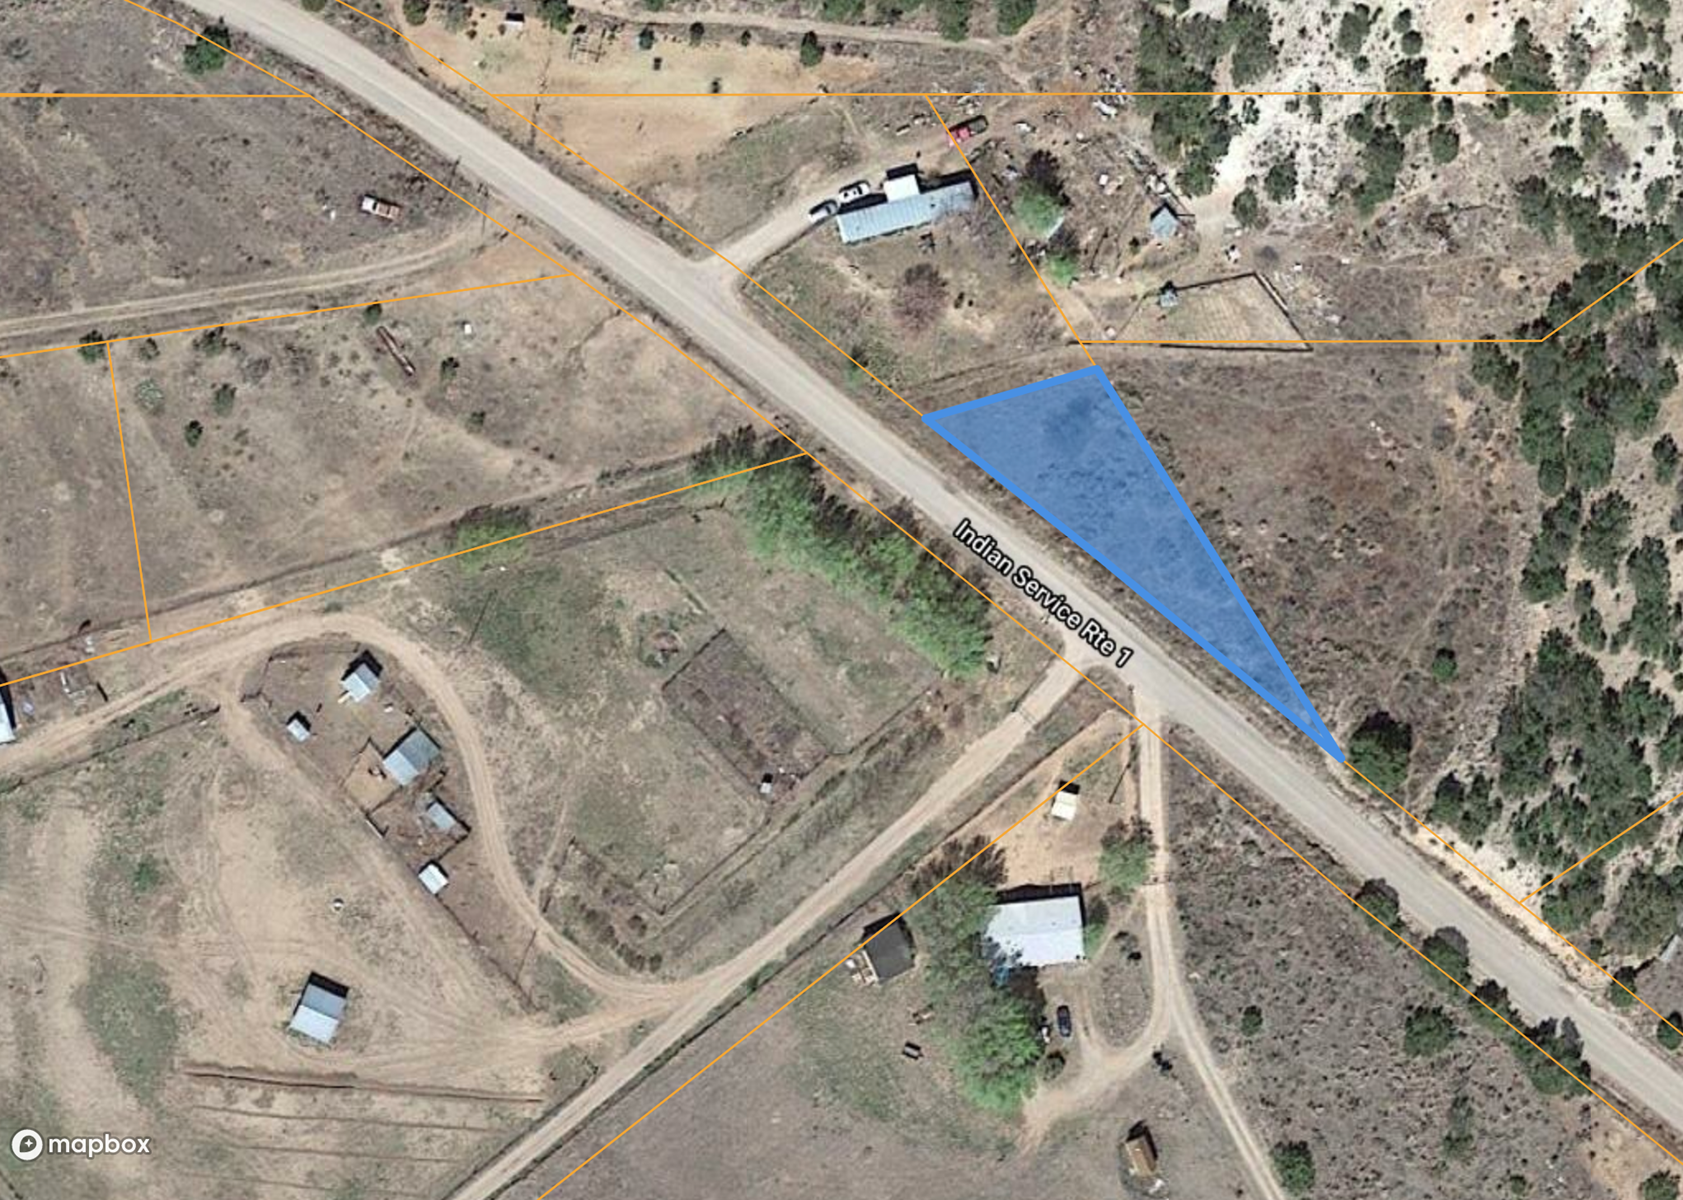 Over three acres of land in Bent, NM near Holloman AFB.